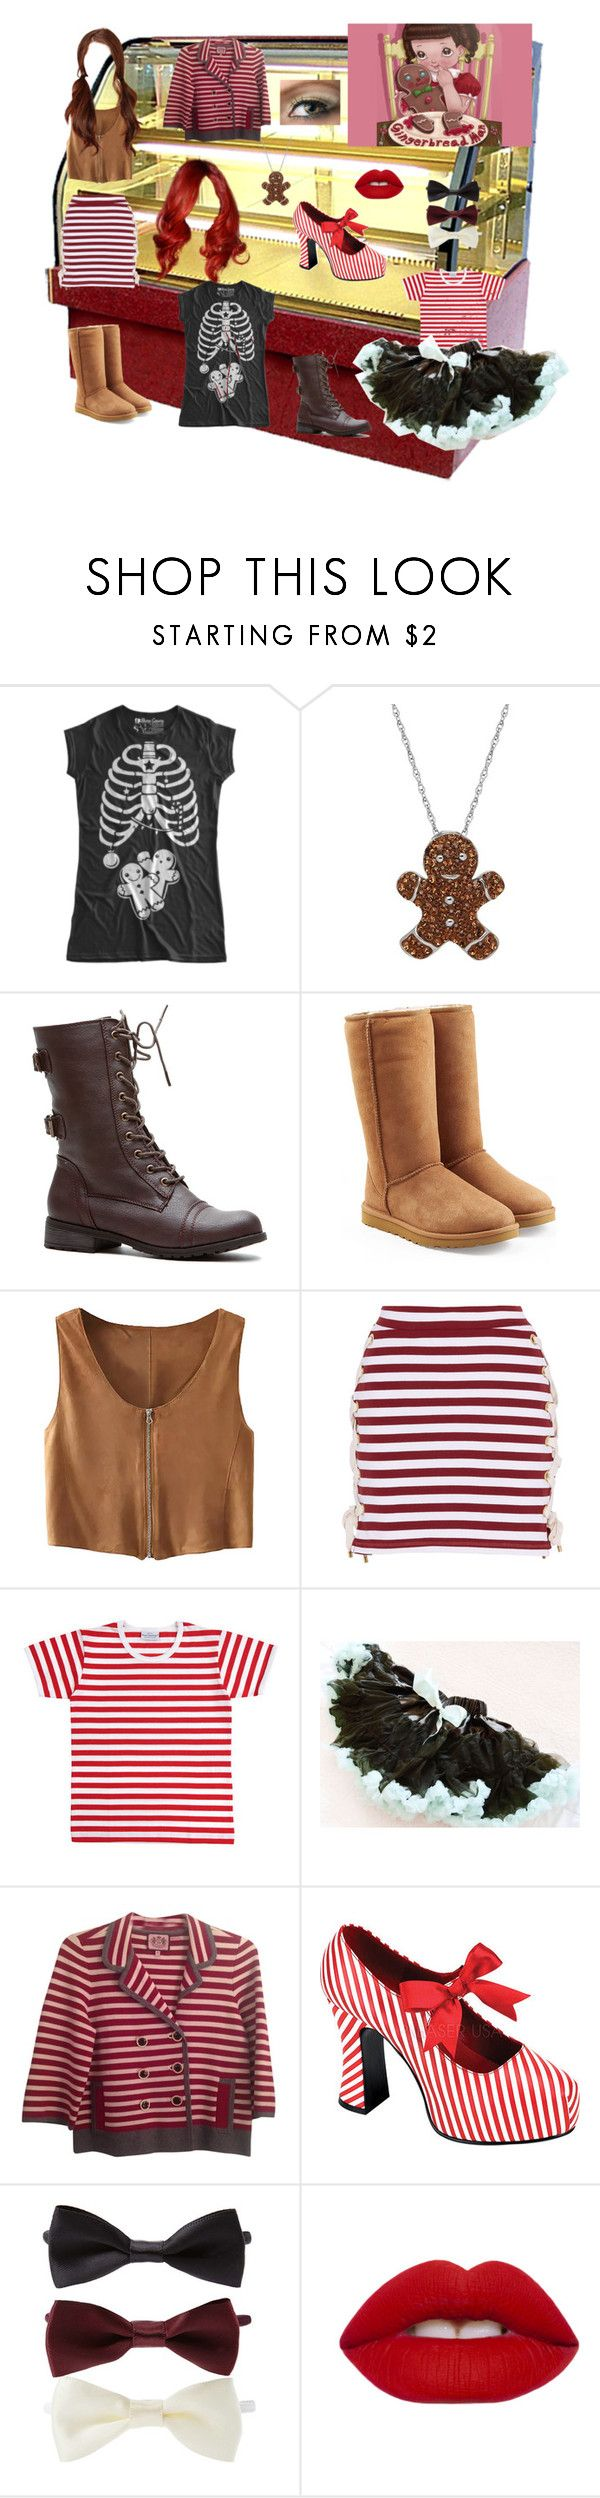 """Gingerbread Woman"" by catniss-cheshire on Polyvore featuring Mode, Artistique, UGG Australia, House of Holland, Marimekko, Juicy Couture, Funtasma, Forever 21 und Lime Crime"